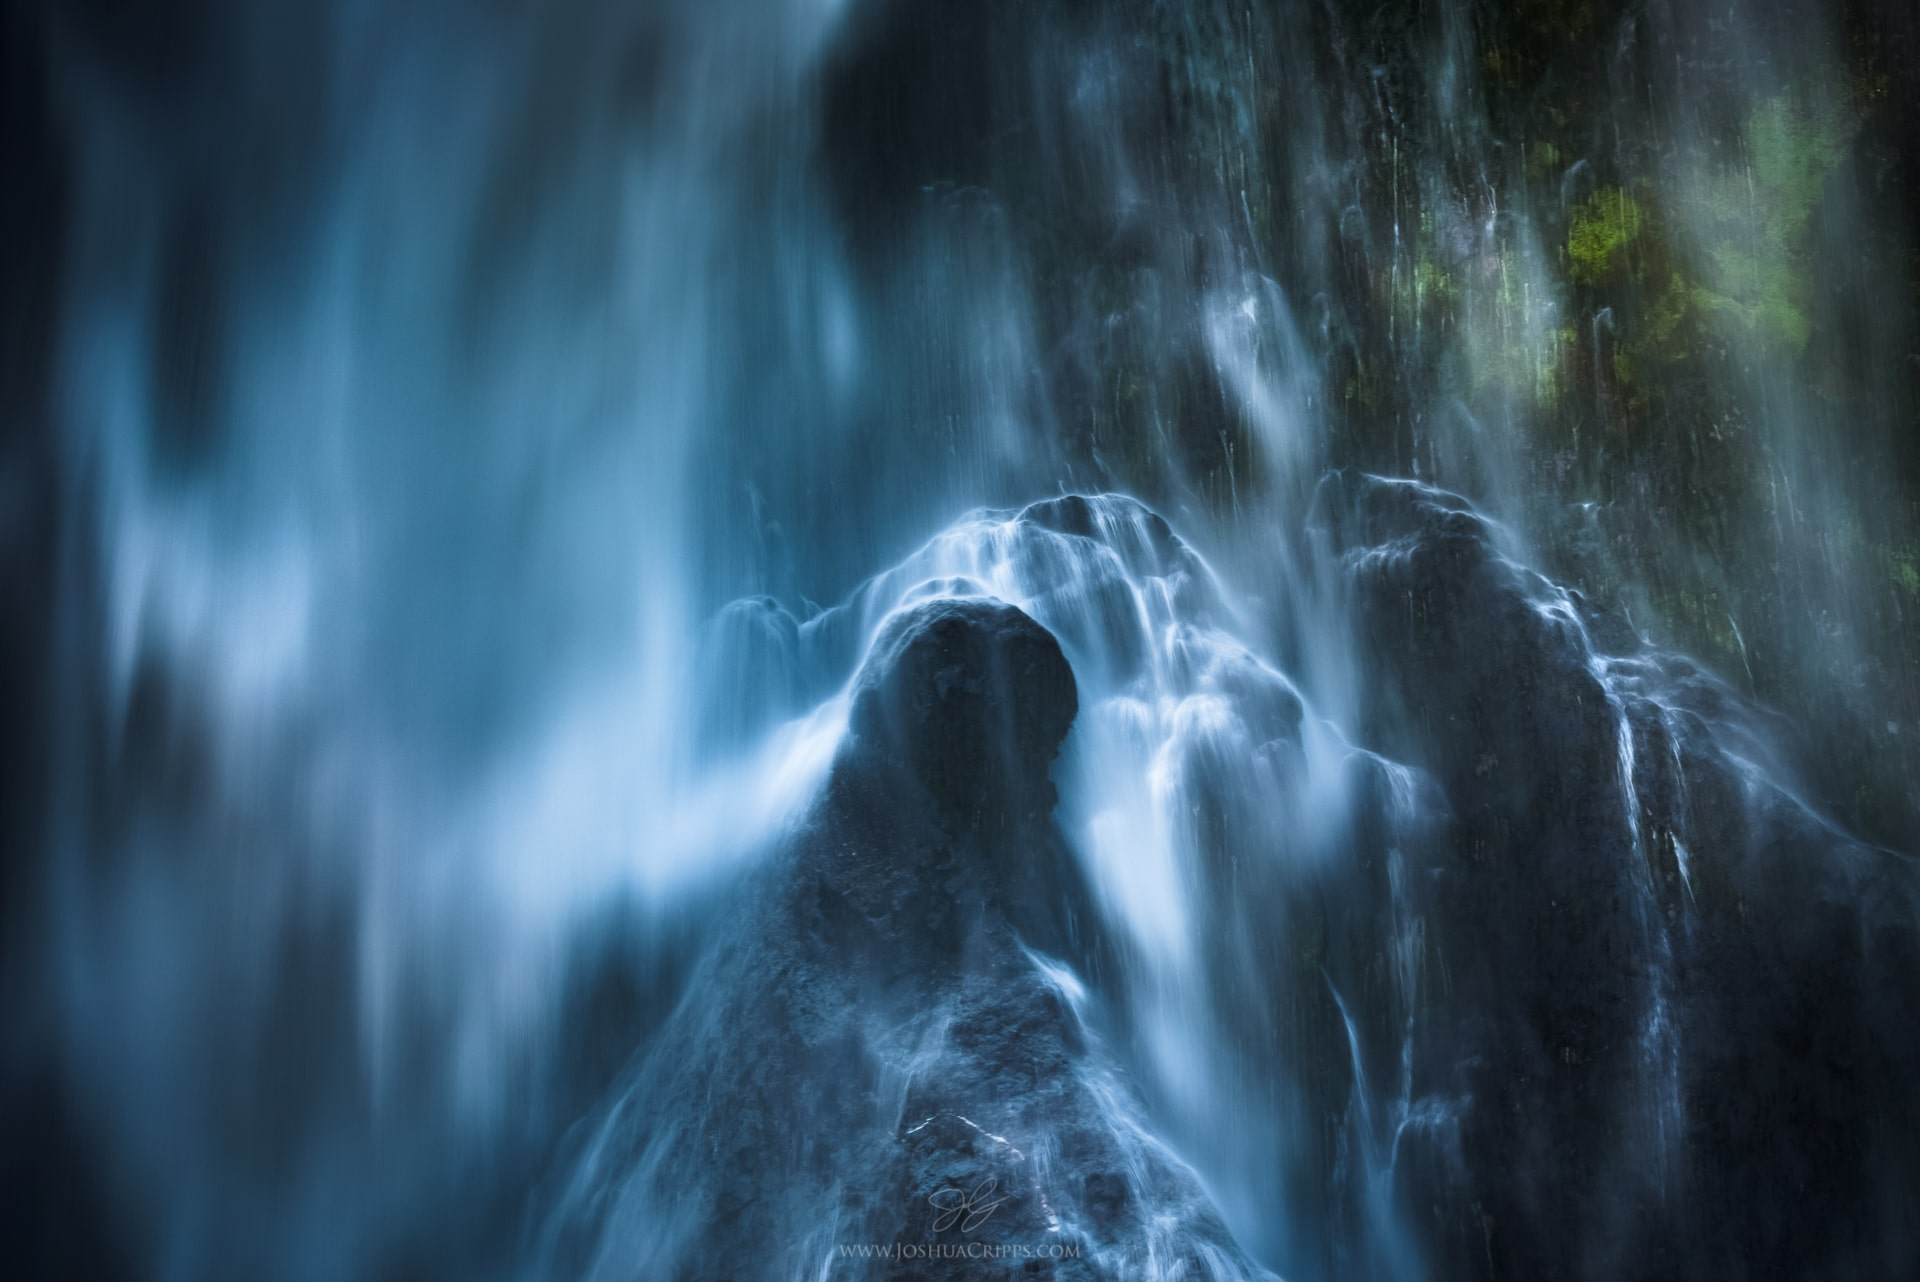 stirling-falls-milford-sound-new-zealand